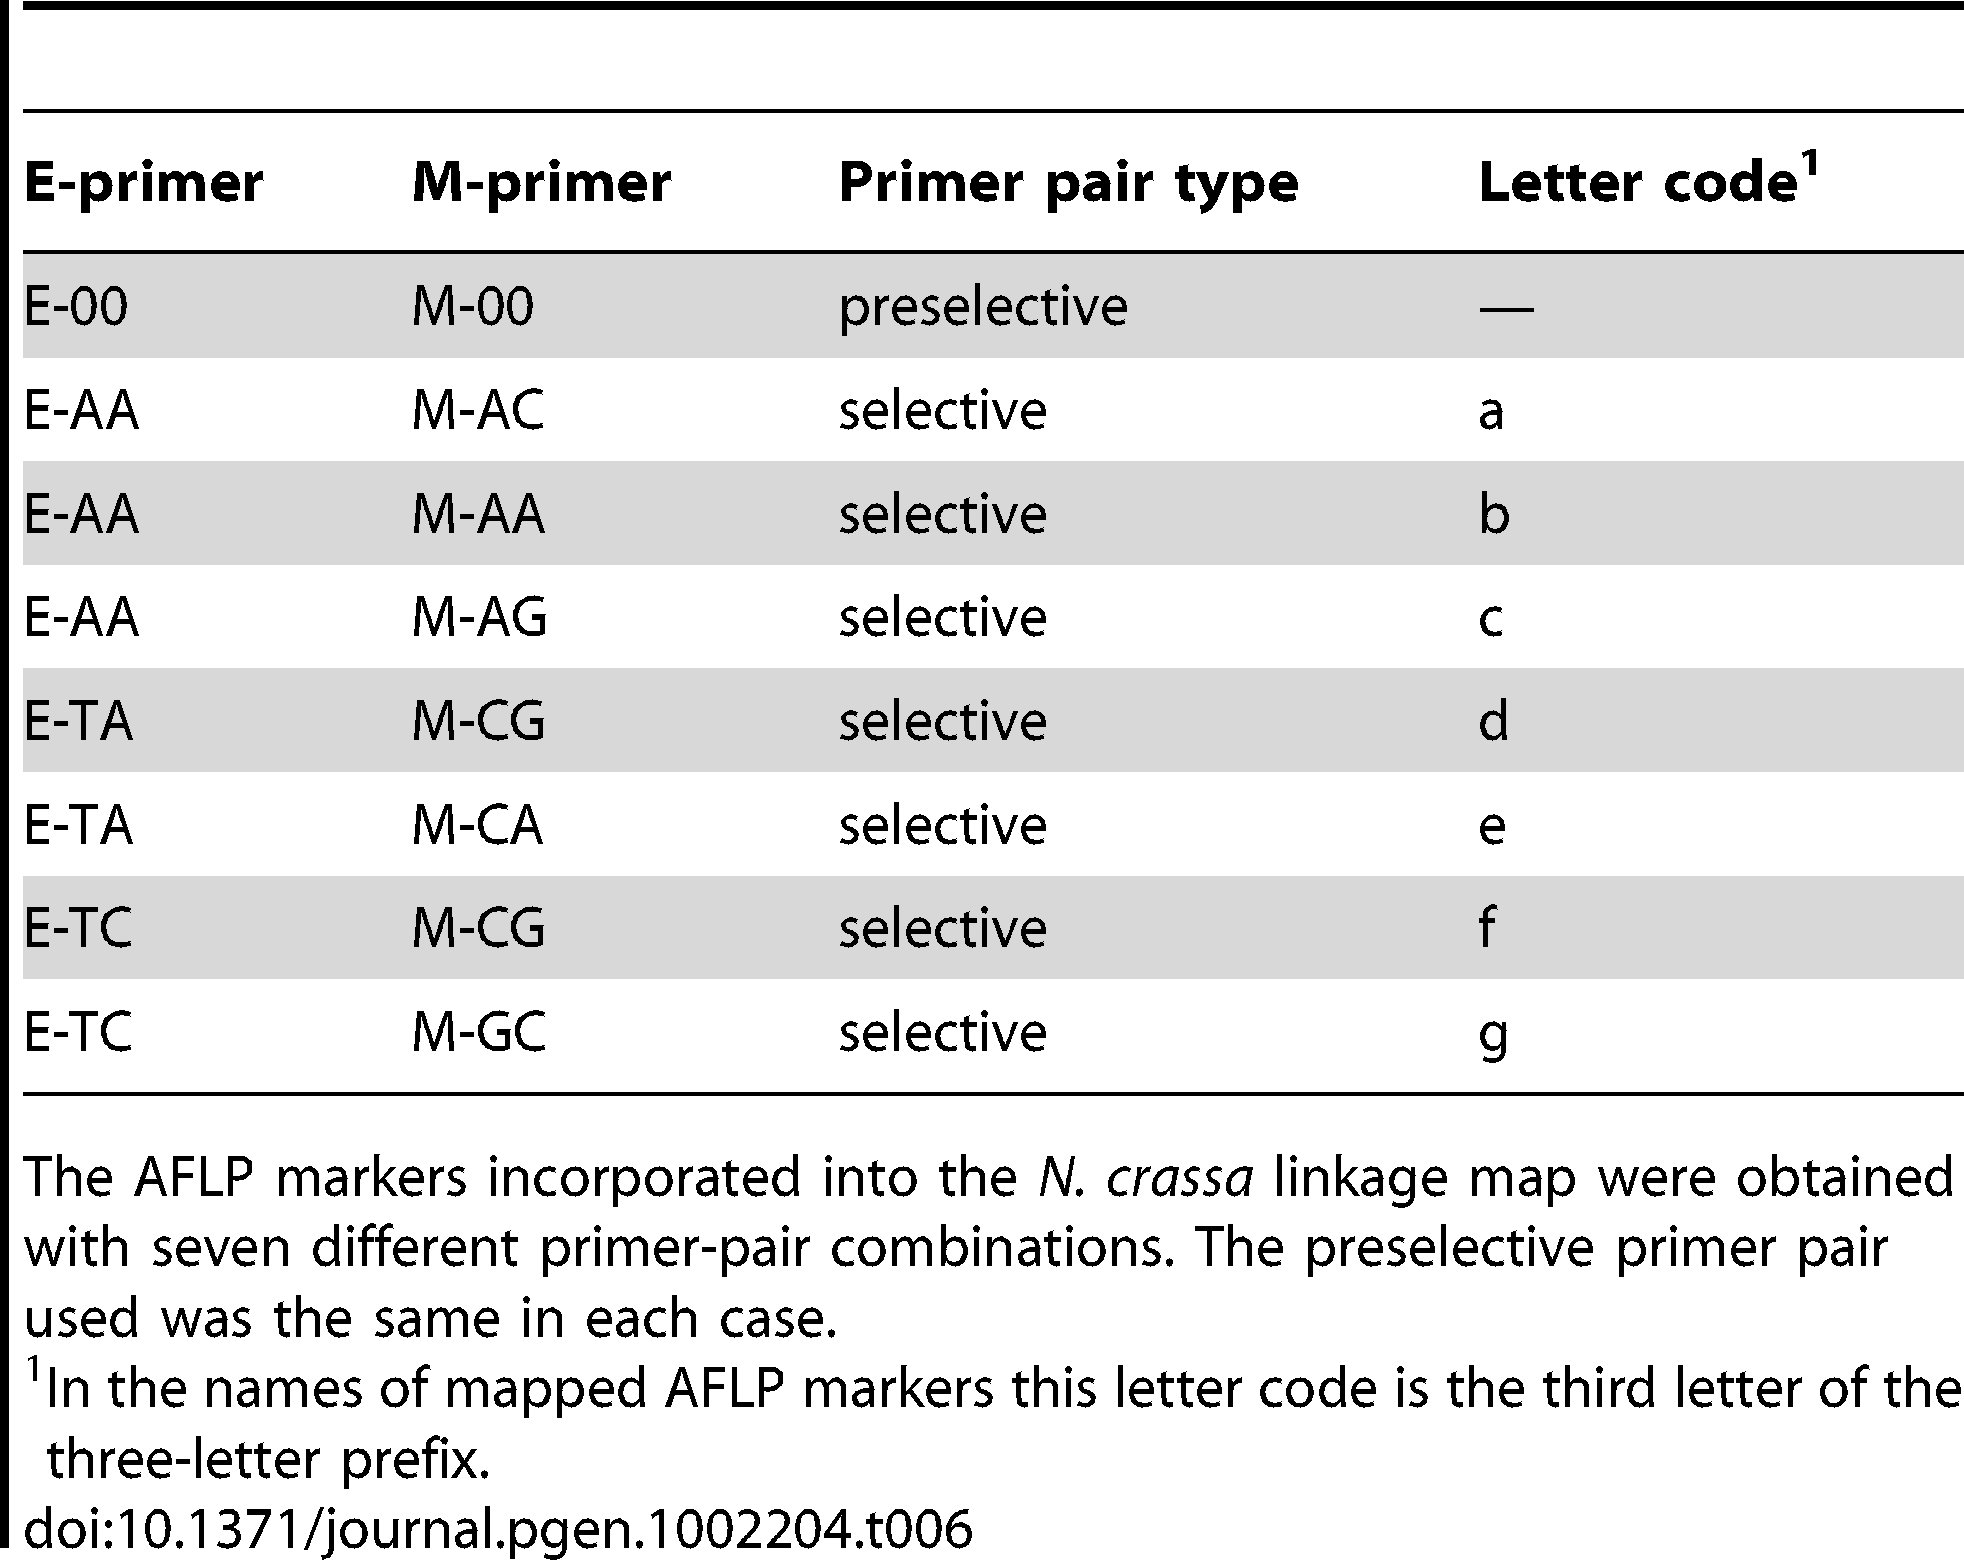 Primer pairs for preselective and selective AFLP reactions.